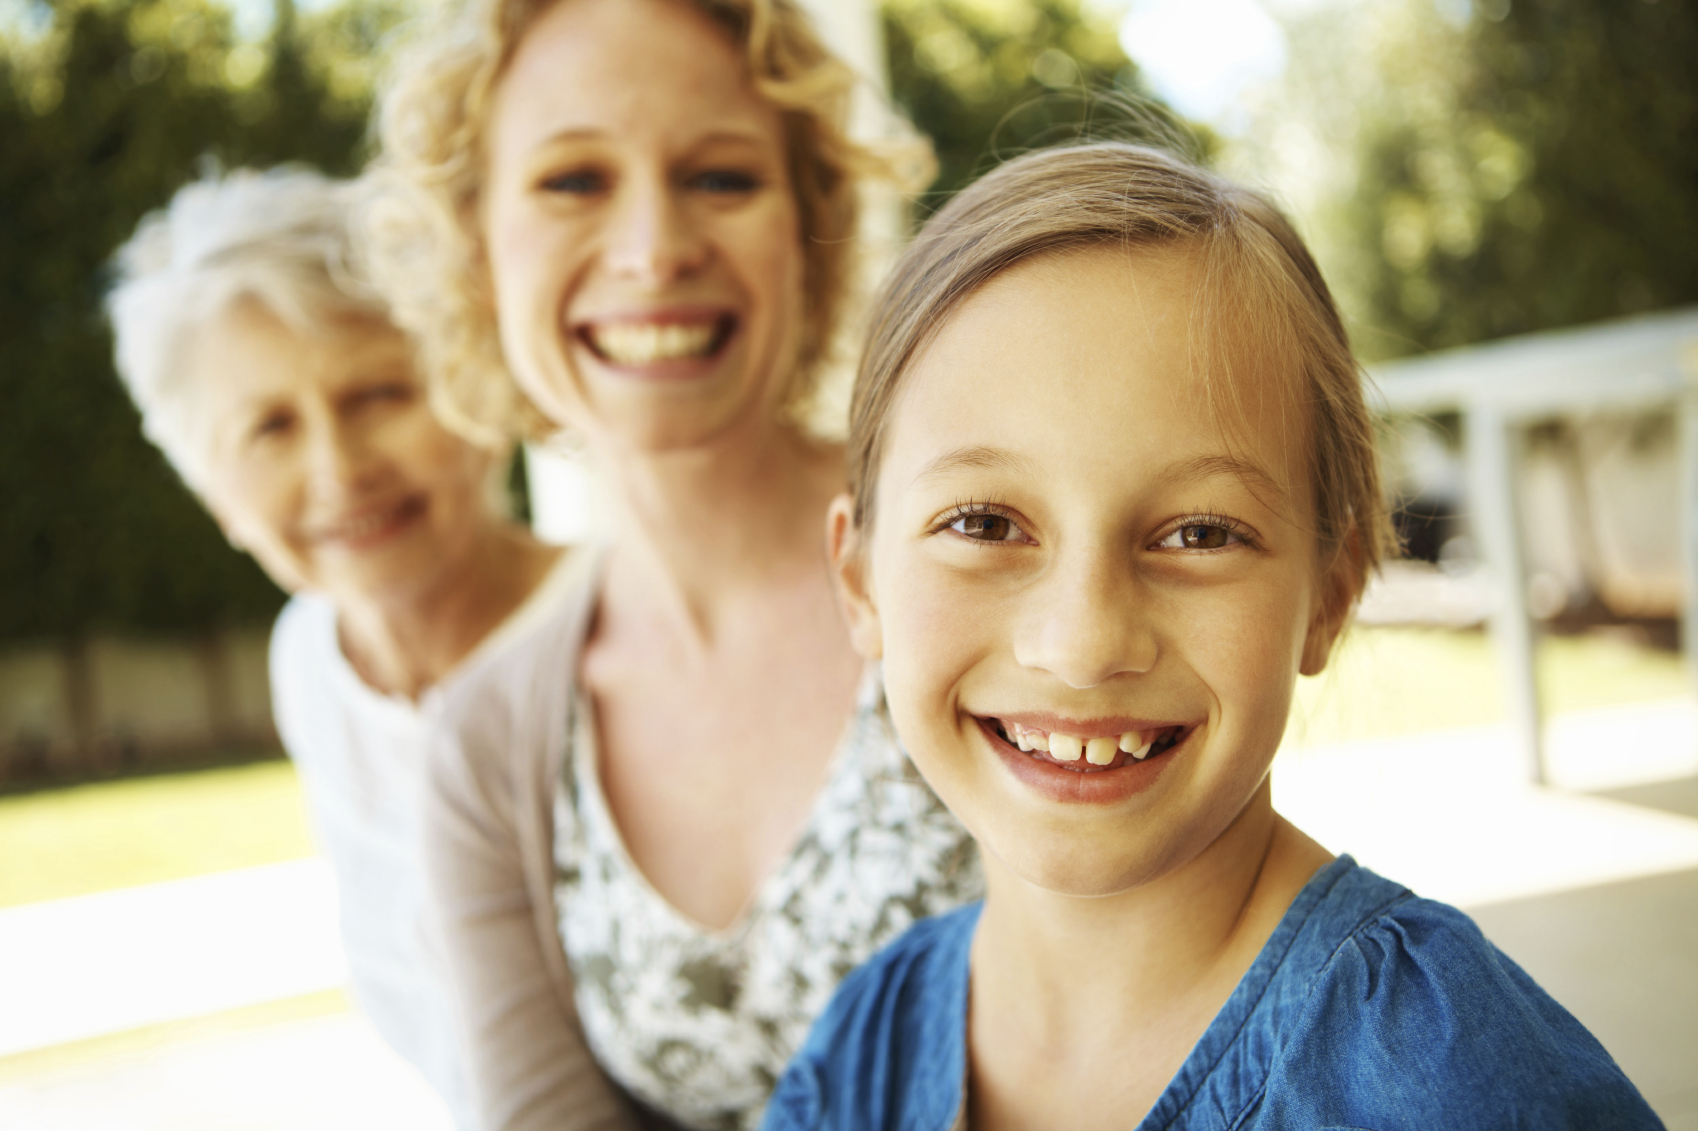 Morristown Family Medicine offers complete primary care services for your entire family.